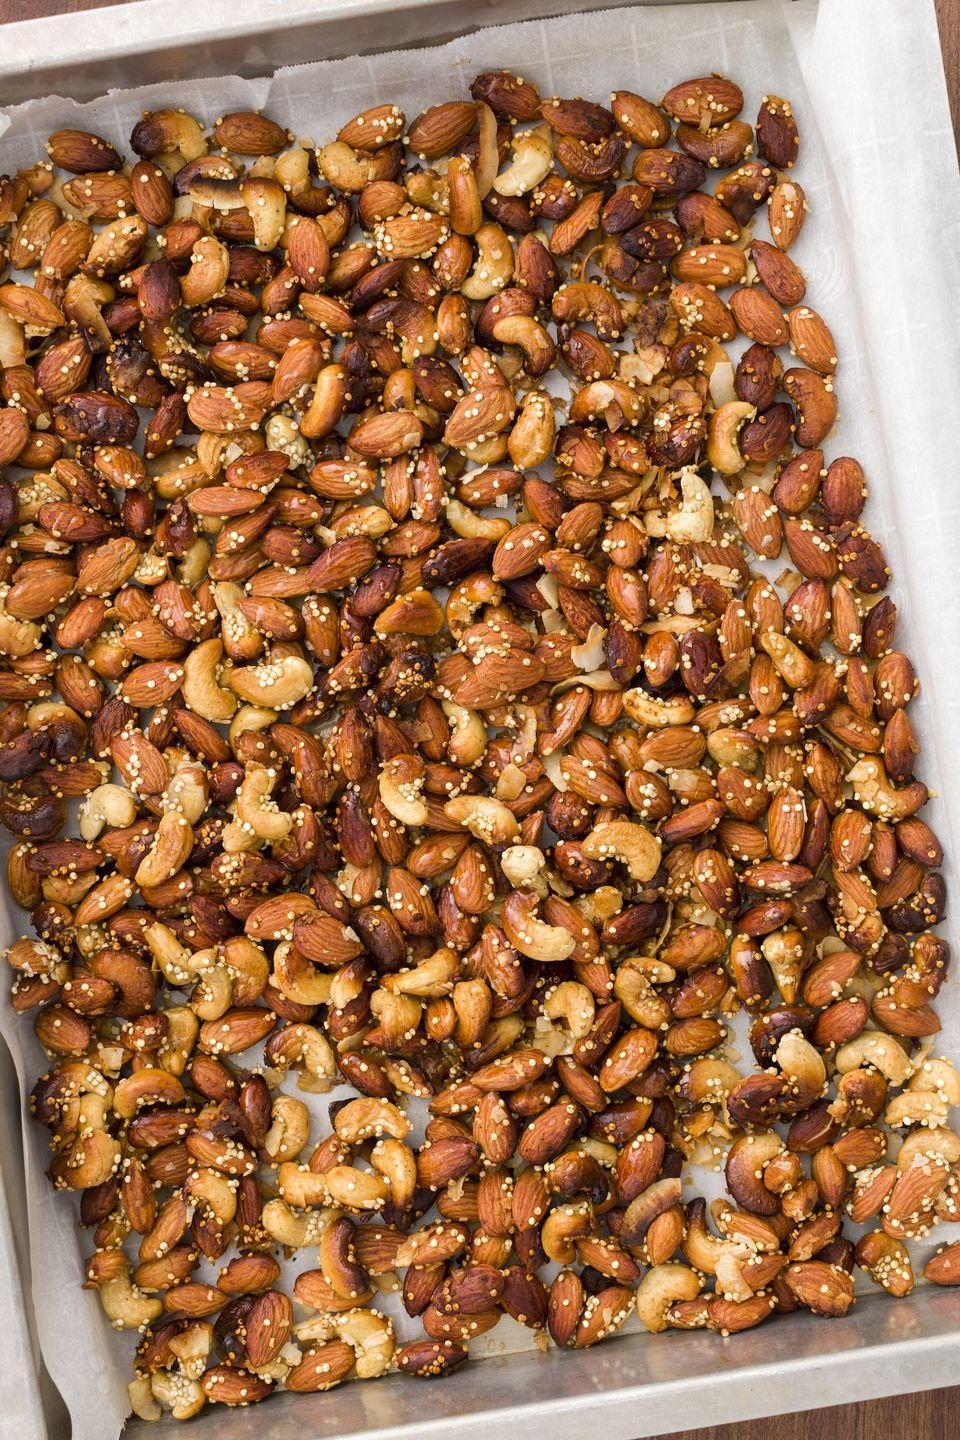 """<p>Plain nuts are boring, but this sweet and spicy mix will kill it at your party.</p><p>Get the recipe from <a href=""""https://www.delish.com/cooking/recipe-ideas/recipes/a45381/sweet-n-spicy-nuts-recipe/"""" rel=""""nofollow noopener"""" target=""""_blank"""" data-ylk=""""slk:Delish"""" class=""""link rapid-noclick-resp"""">Delish</a>.</p>"""